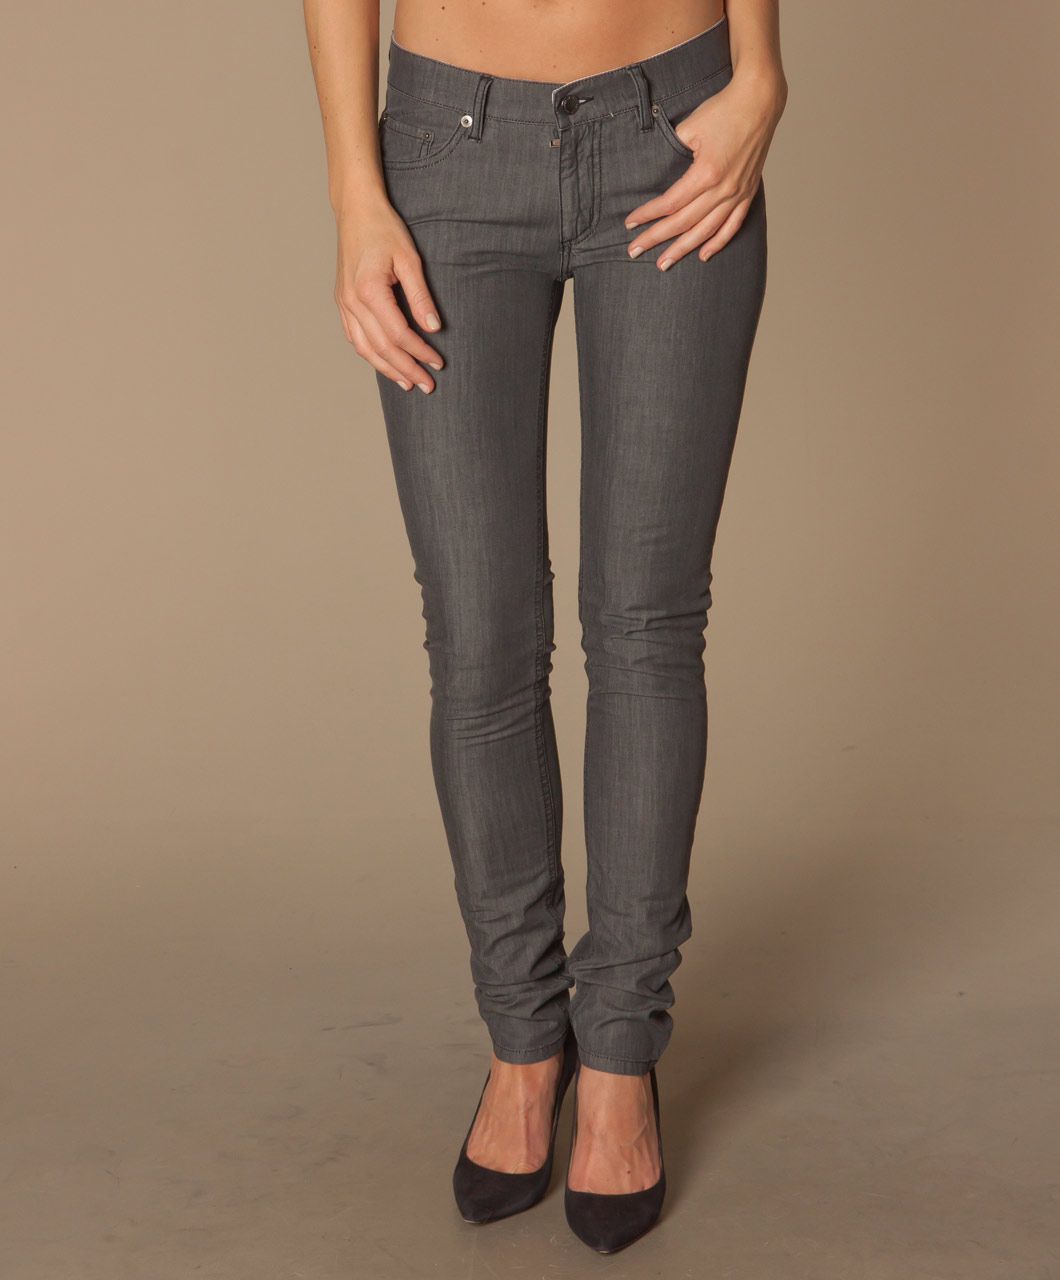 Dark Grey Skinny Jeans Womens | Bbg Clothing